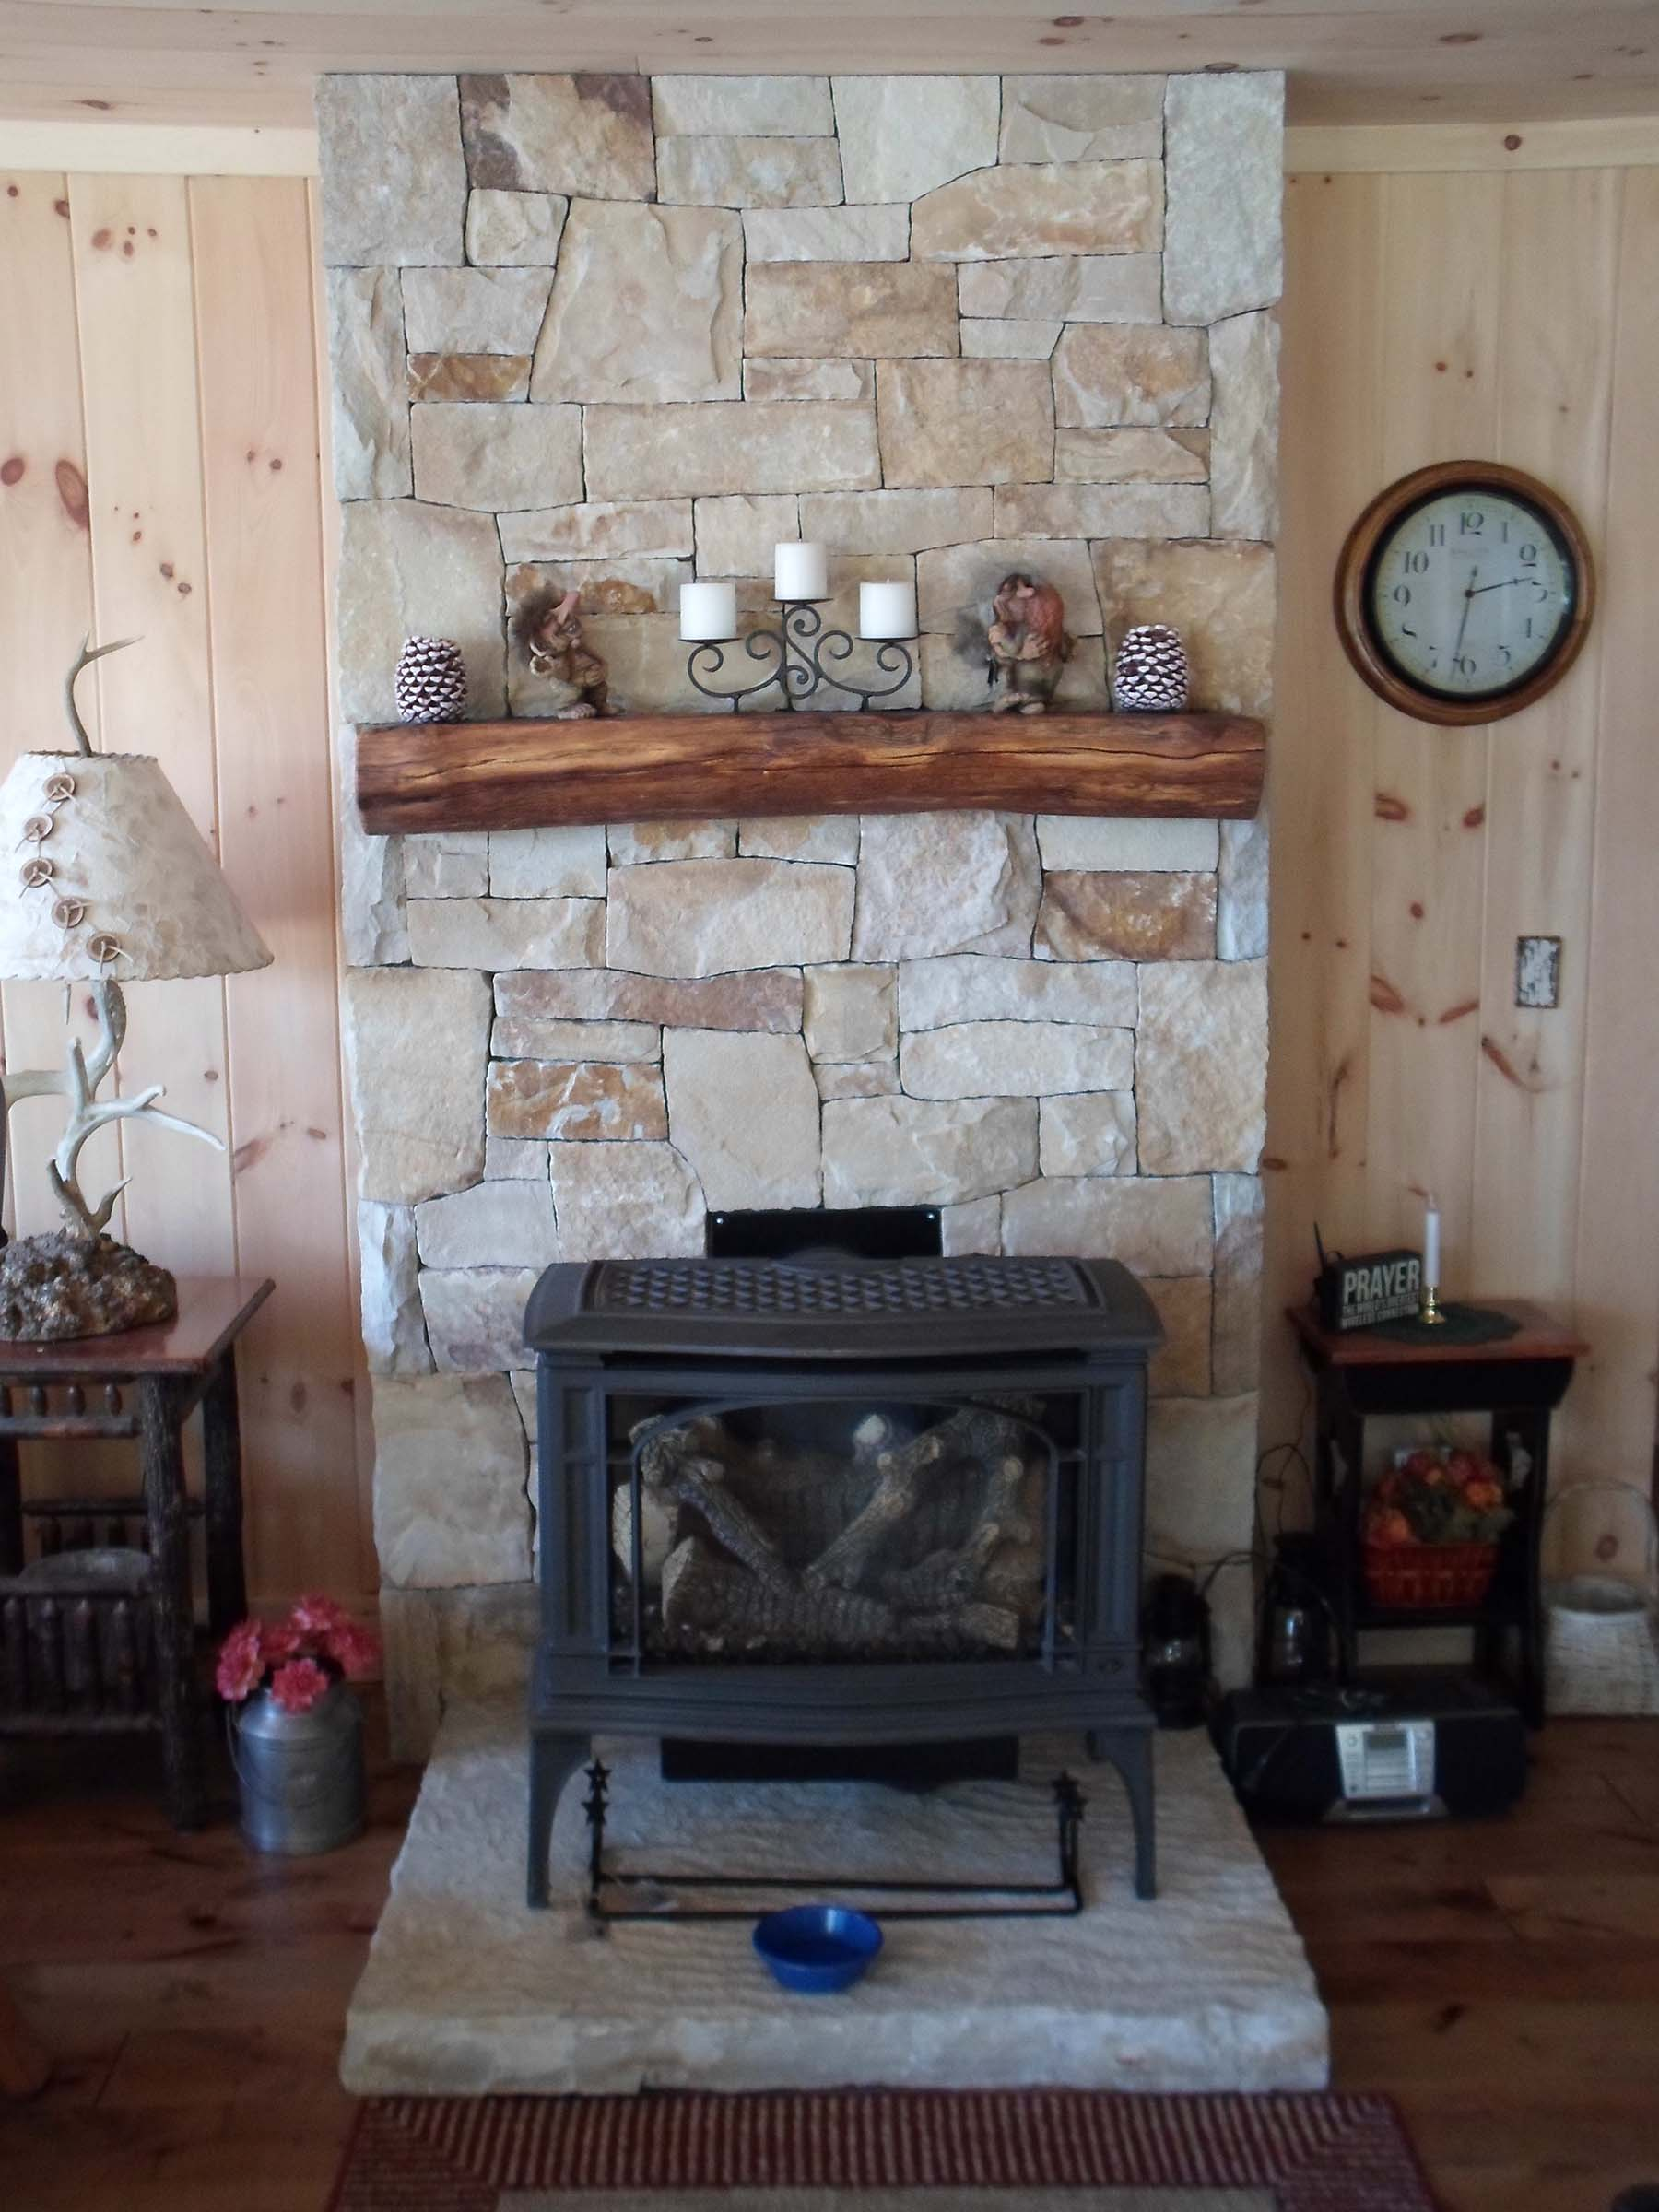 South Bay Quartzite natural stone fireplace